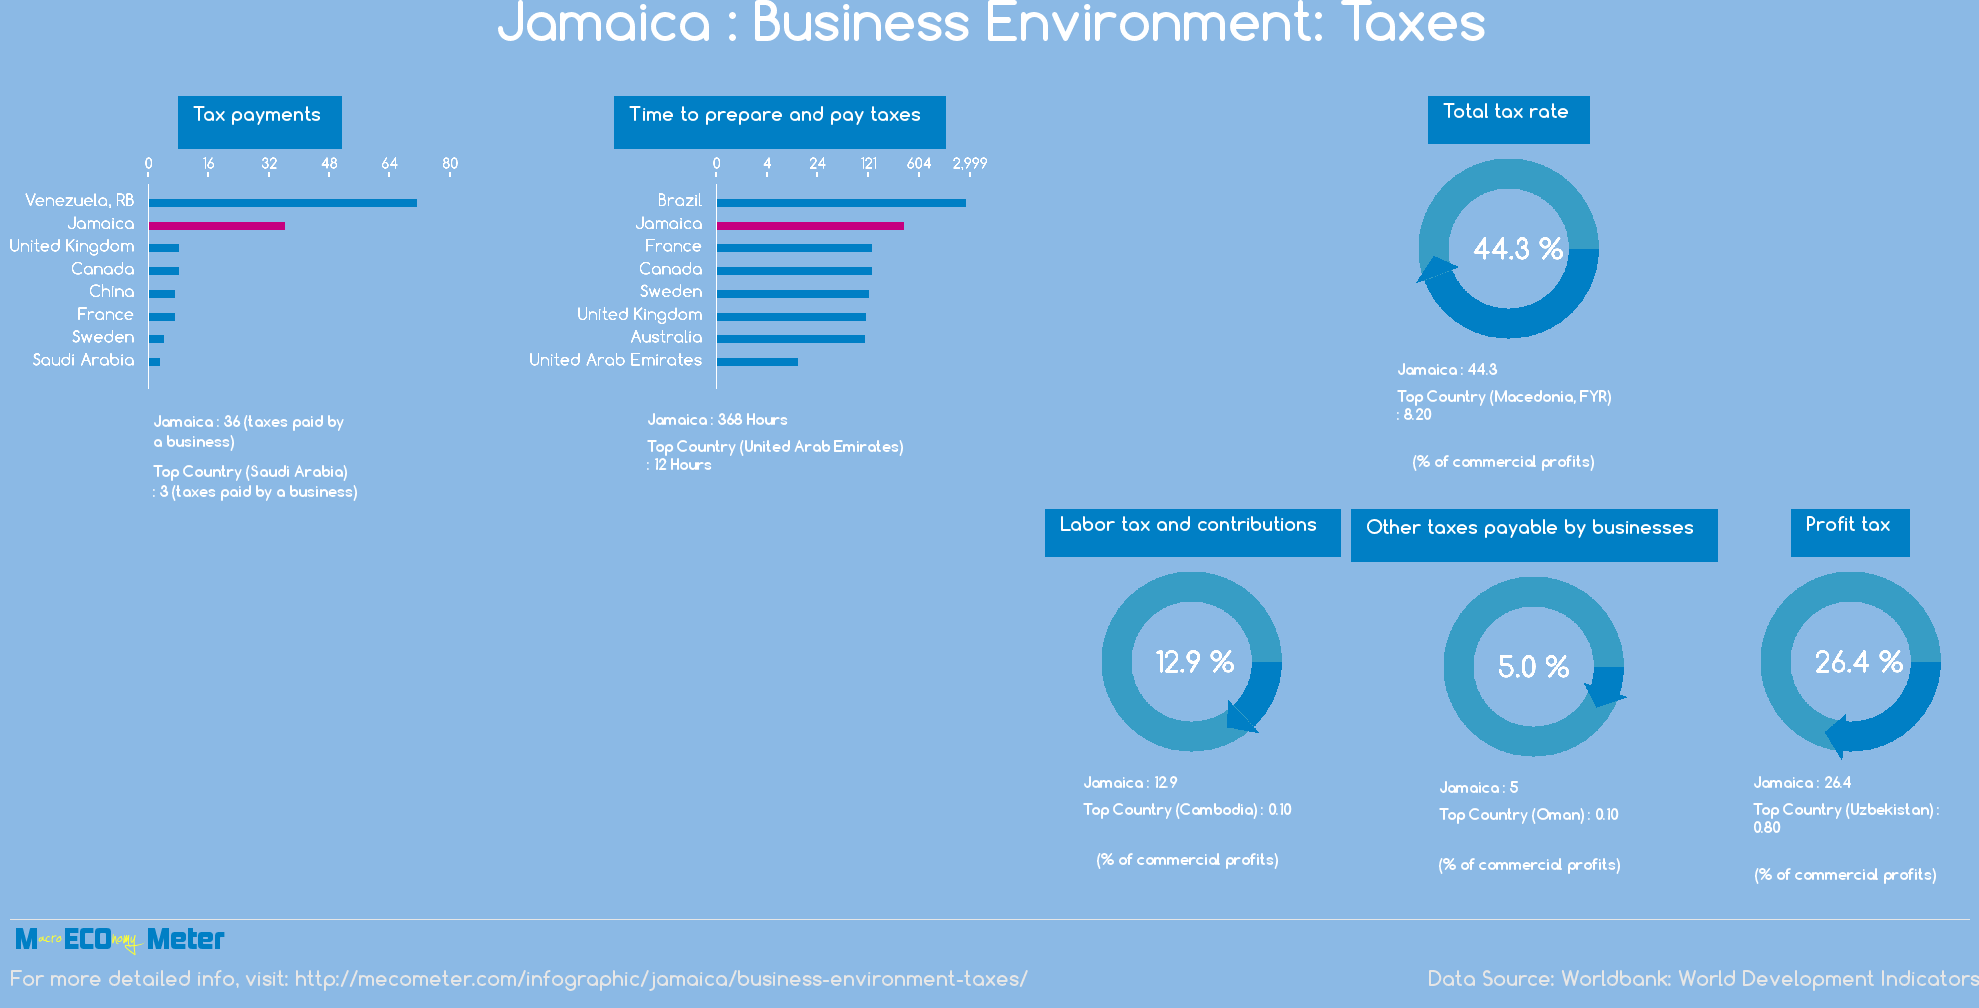 Jamaica : Business Environment: Taxes